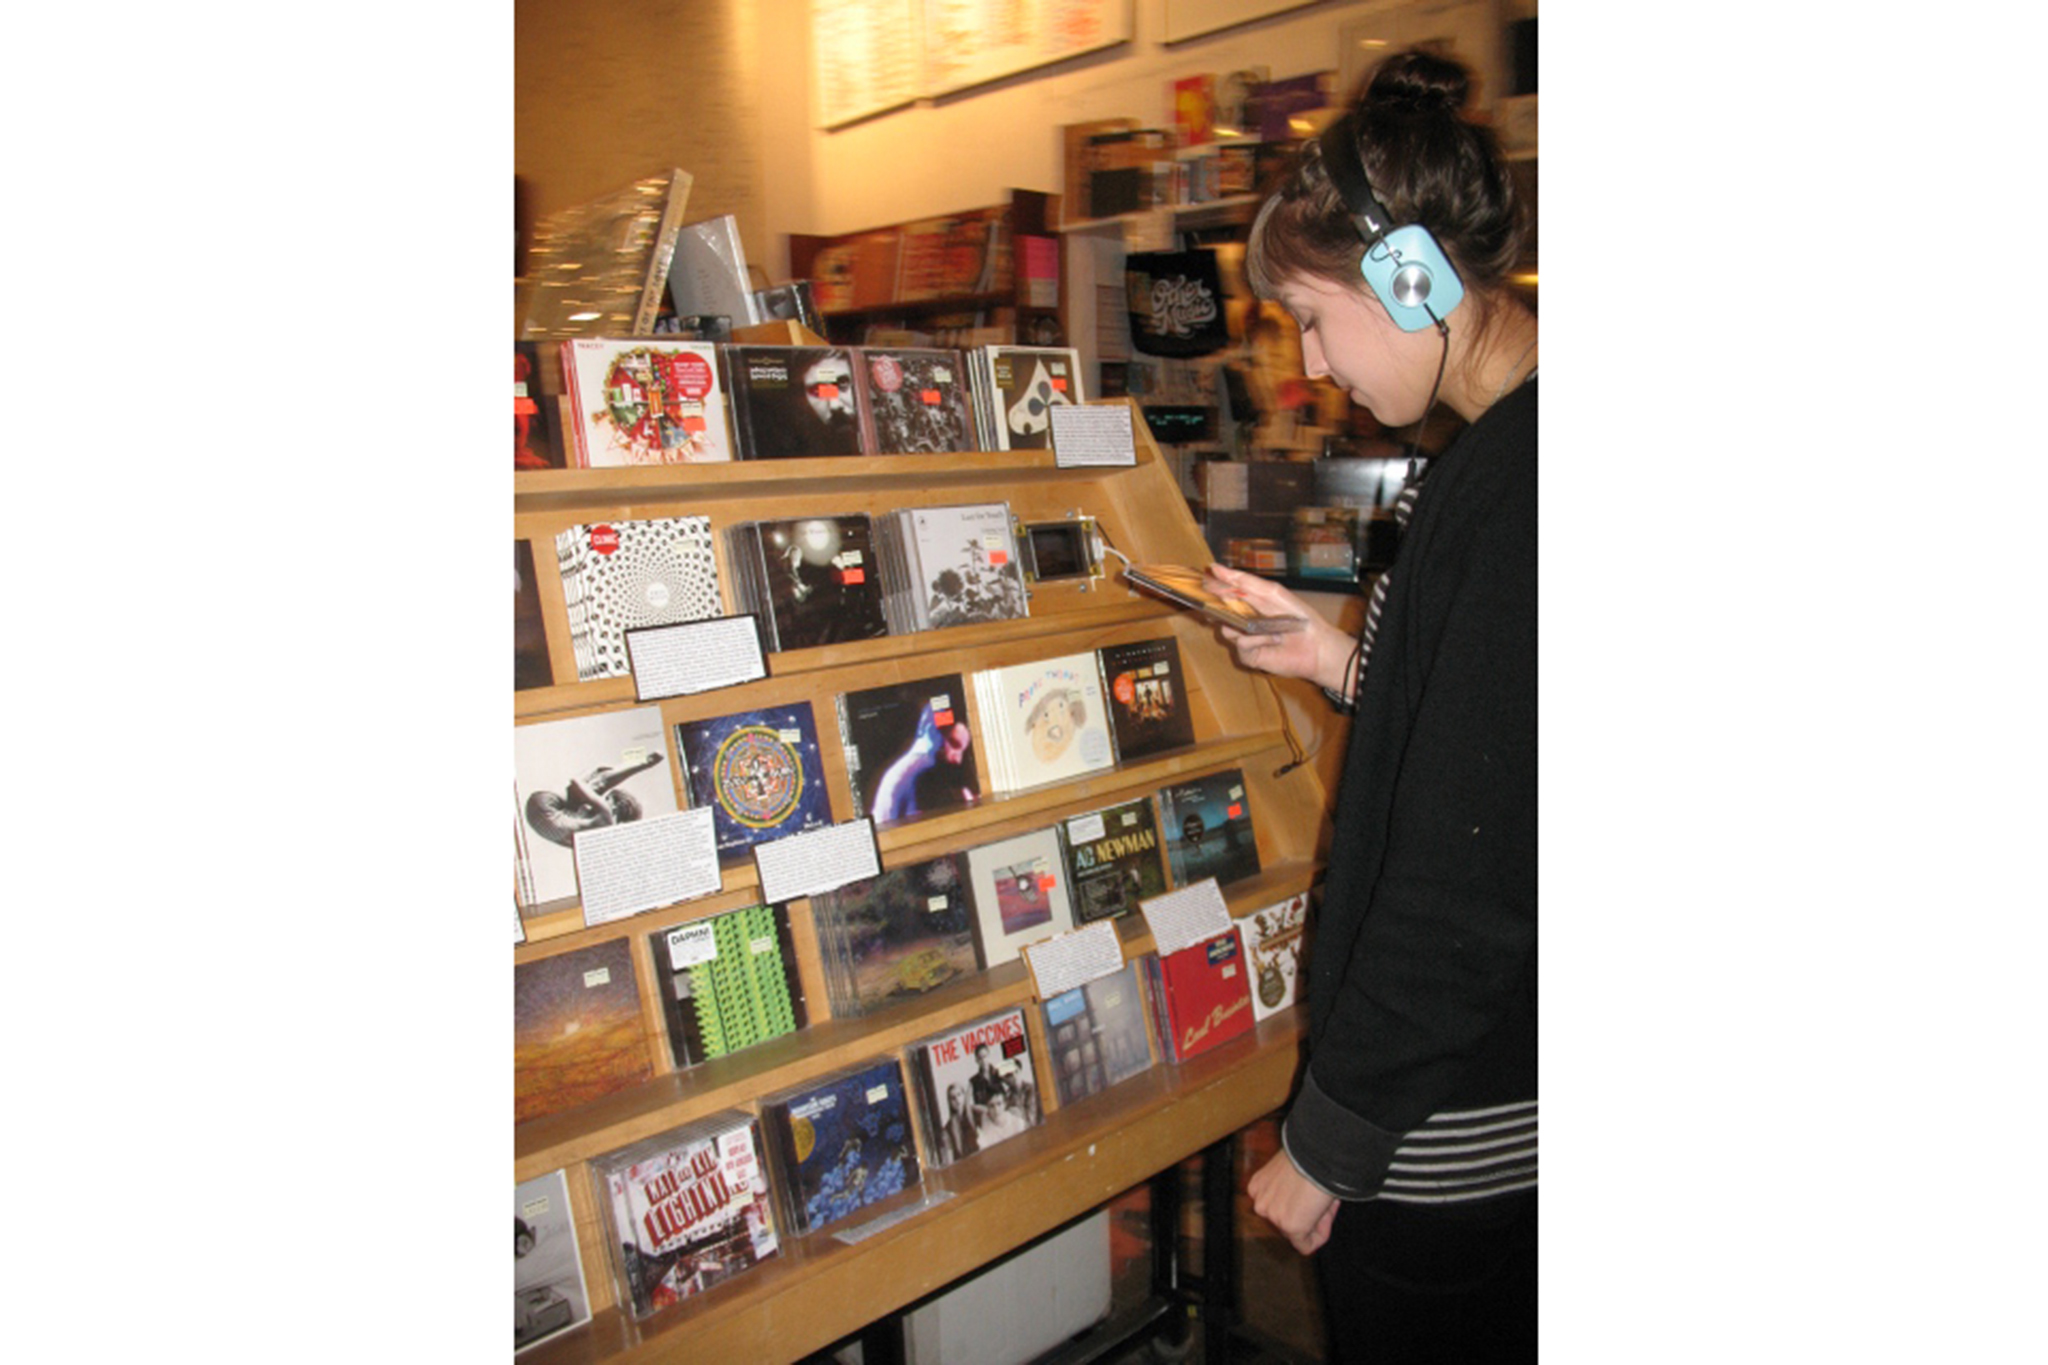 Dig through the crates at Other Music